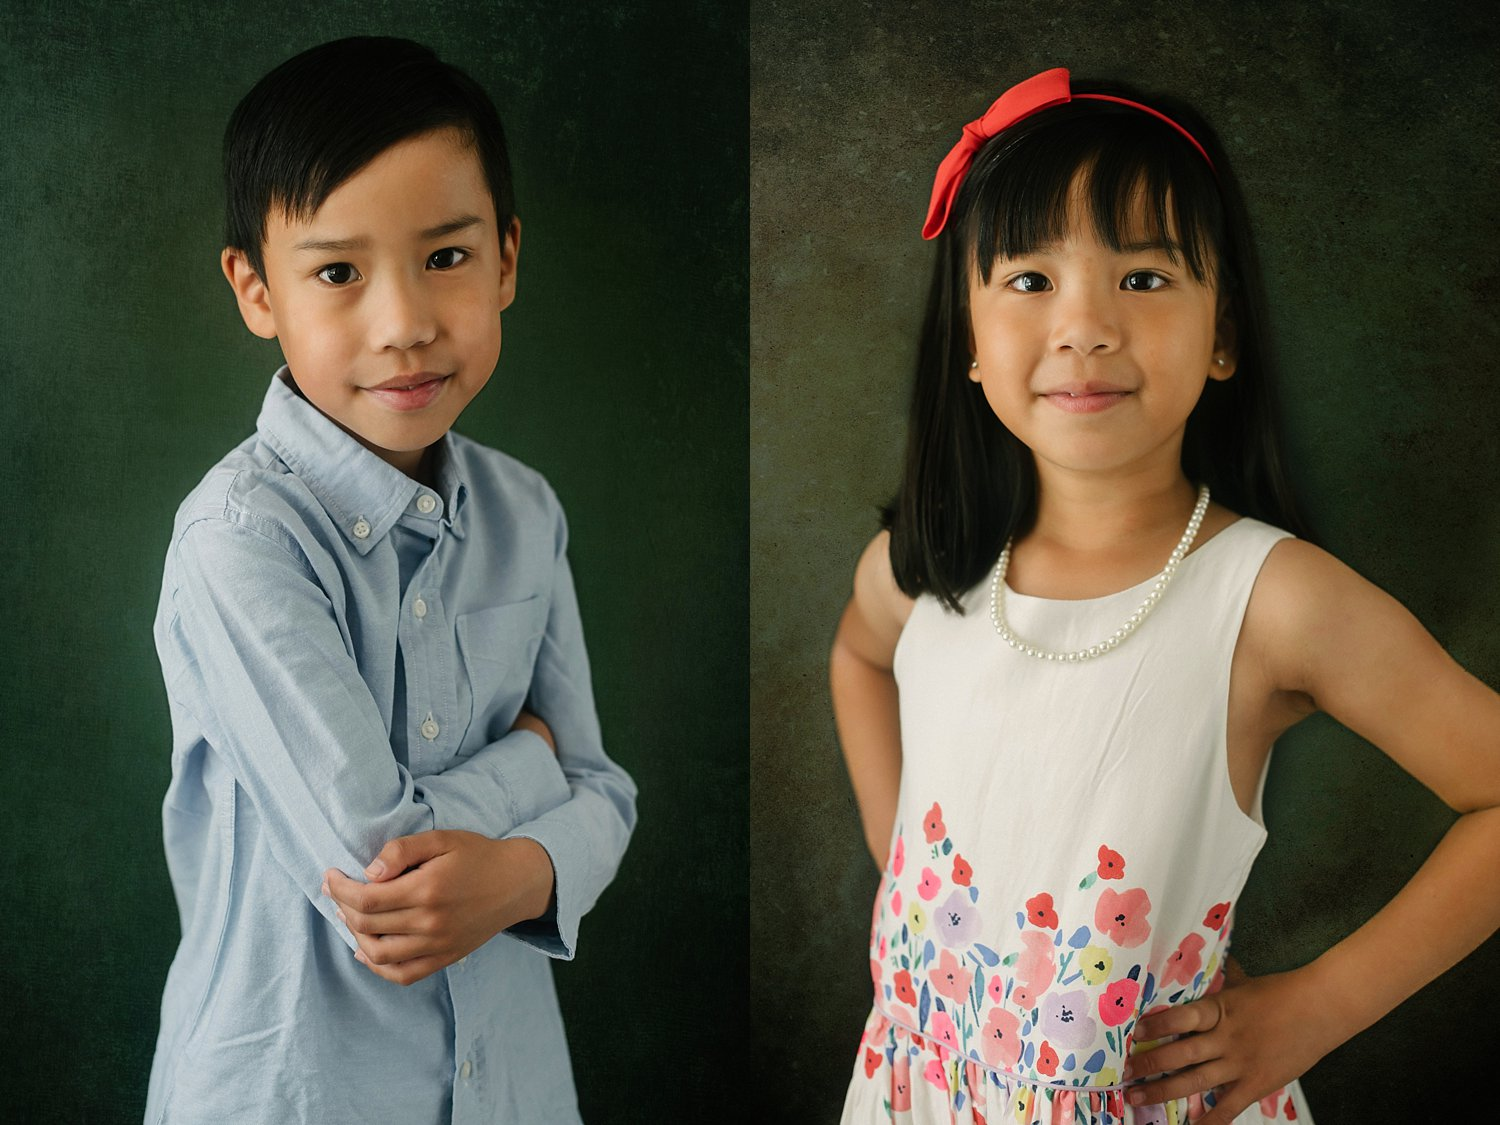 fake background kids photos - 6 Types of Portrait Backgrounds You Can Use for Your Images